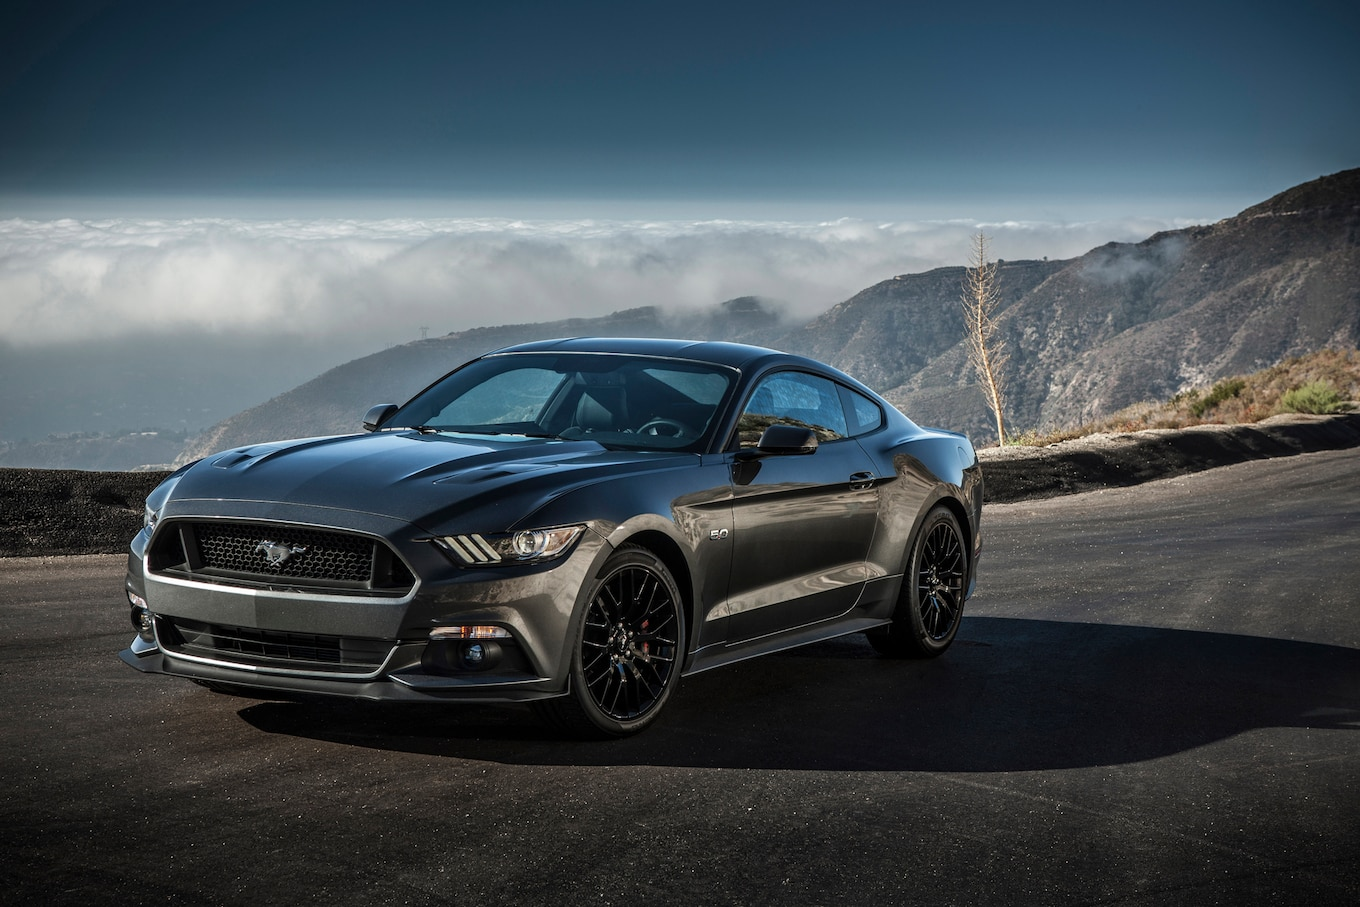 2015 Mustang Gt Pictures 2015 Ford Mustang Reviews And Rating Motortrend